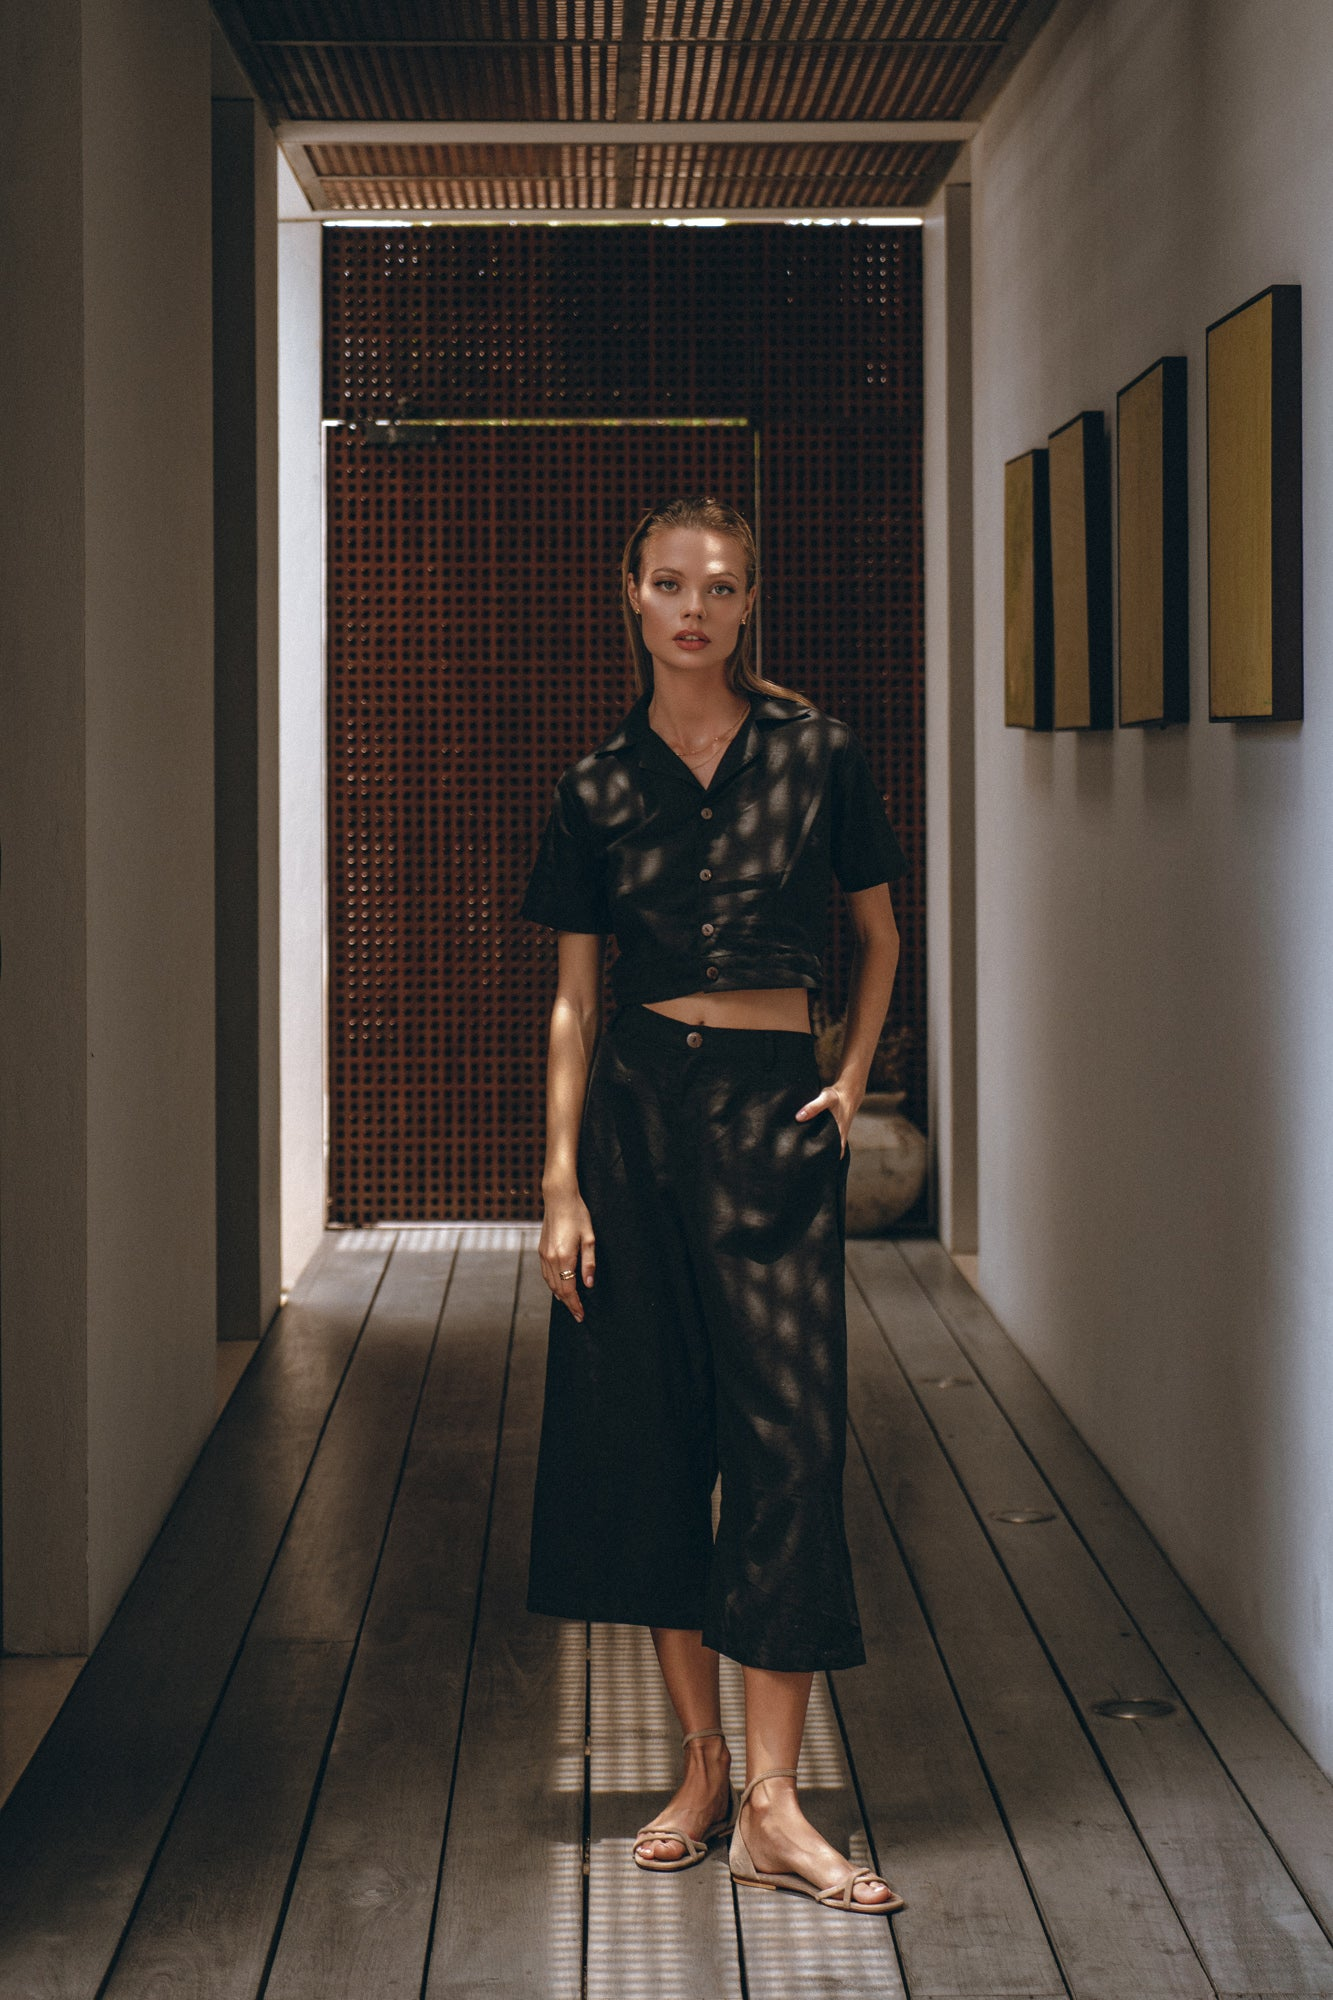 woman standing in a room, dressed in black fae linen pants and a black top